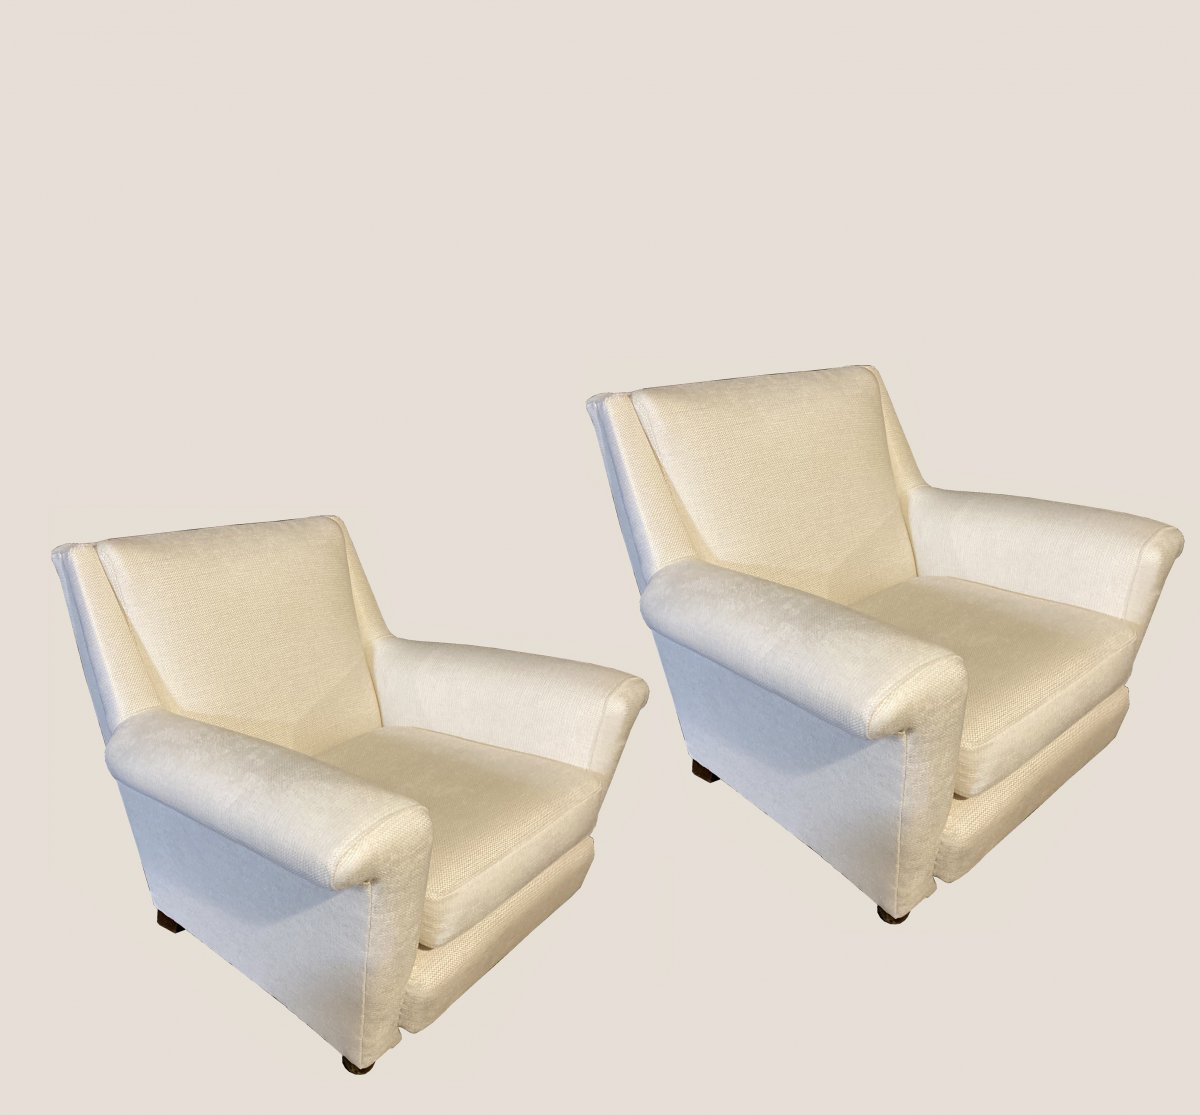 Pair Of Armchairs 1940